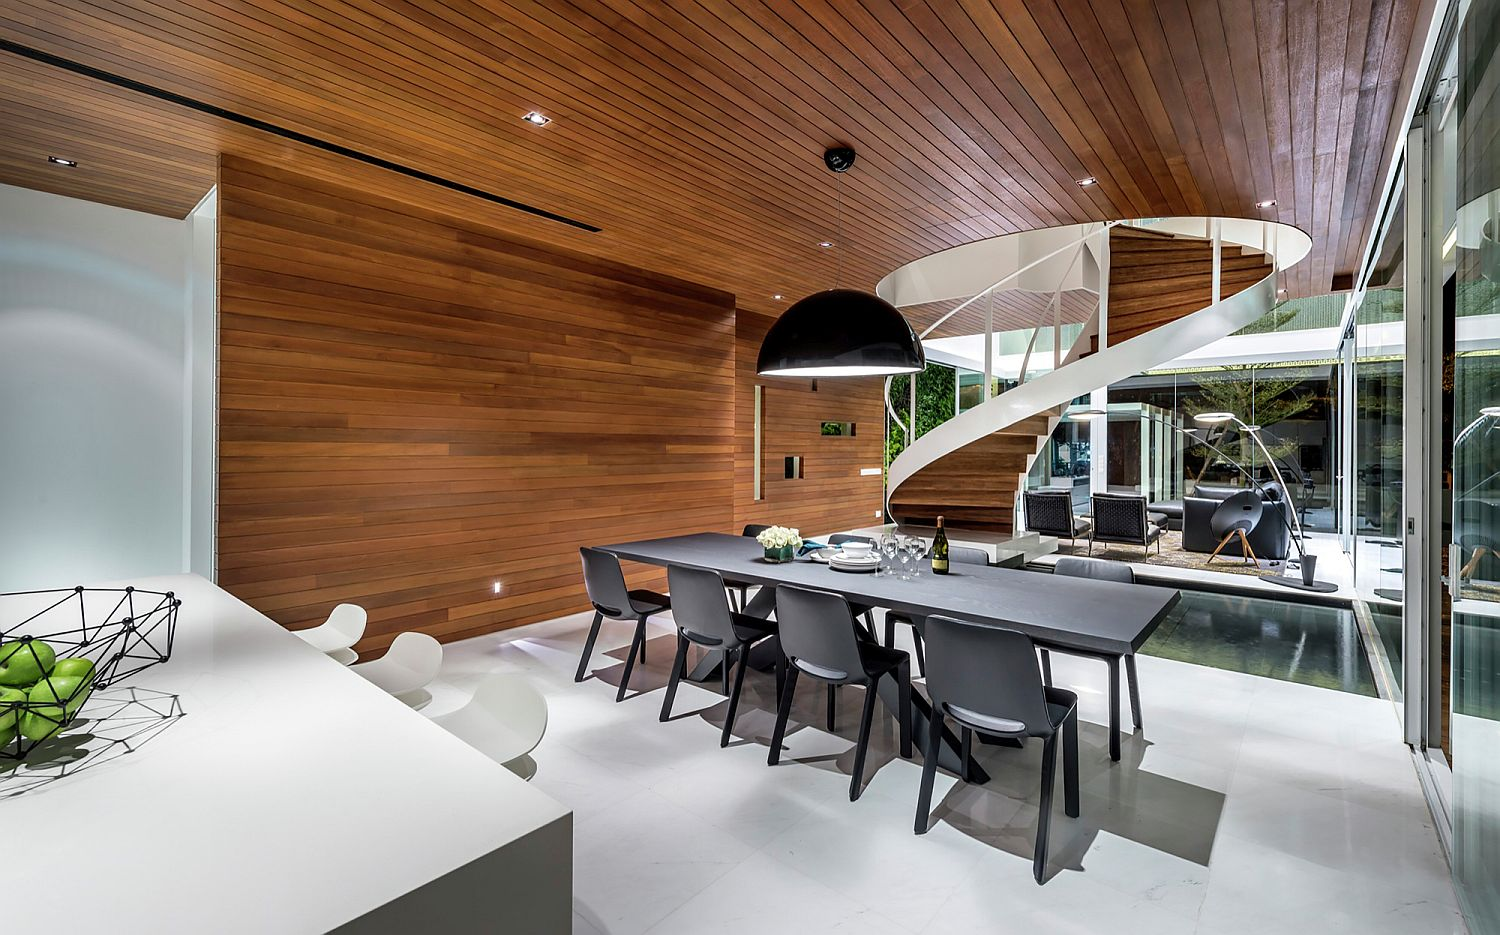 Dining area and kitchen of the house with wooden ceiling